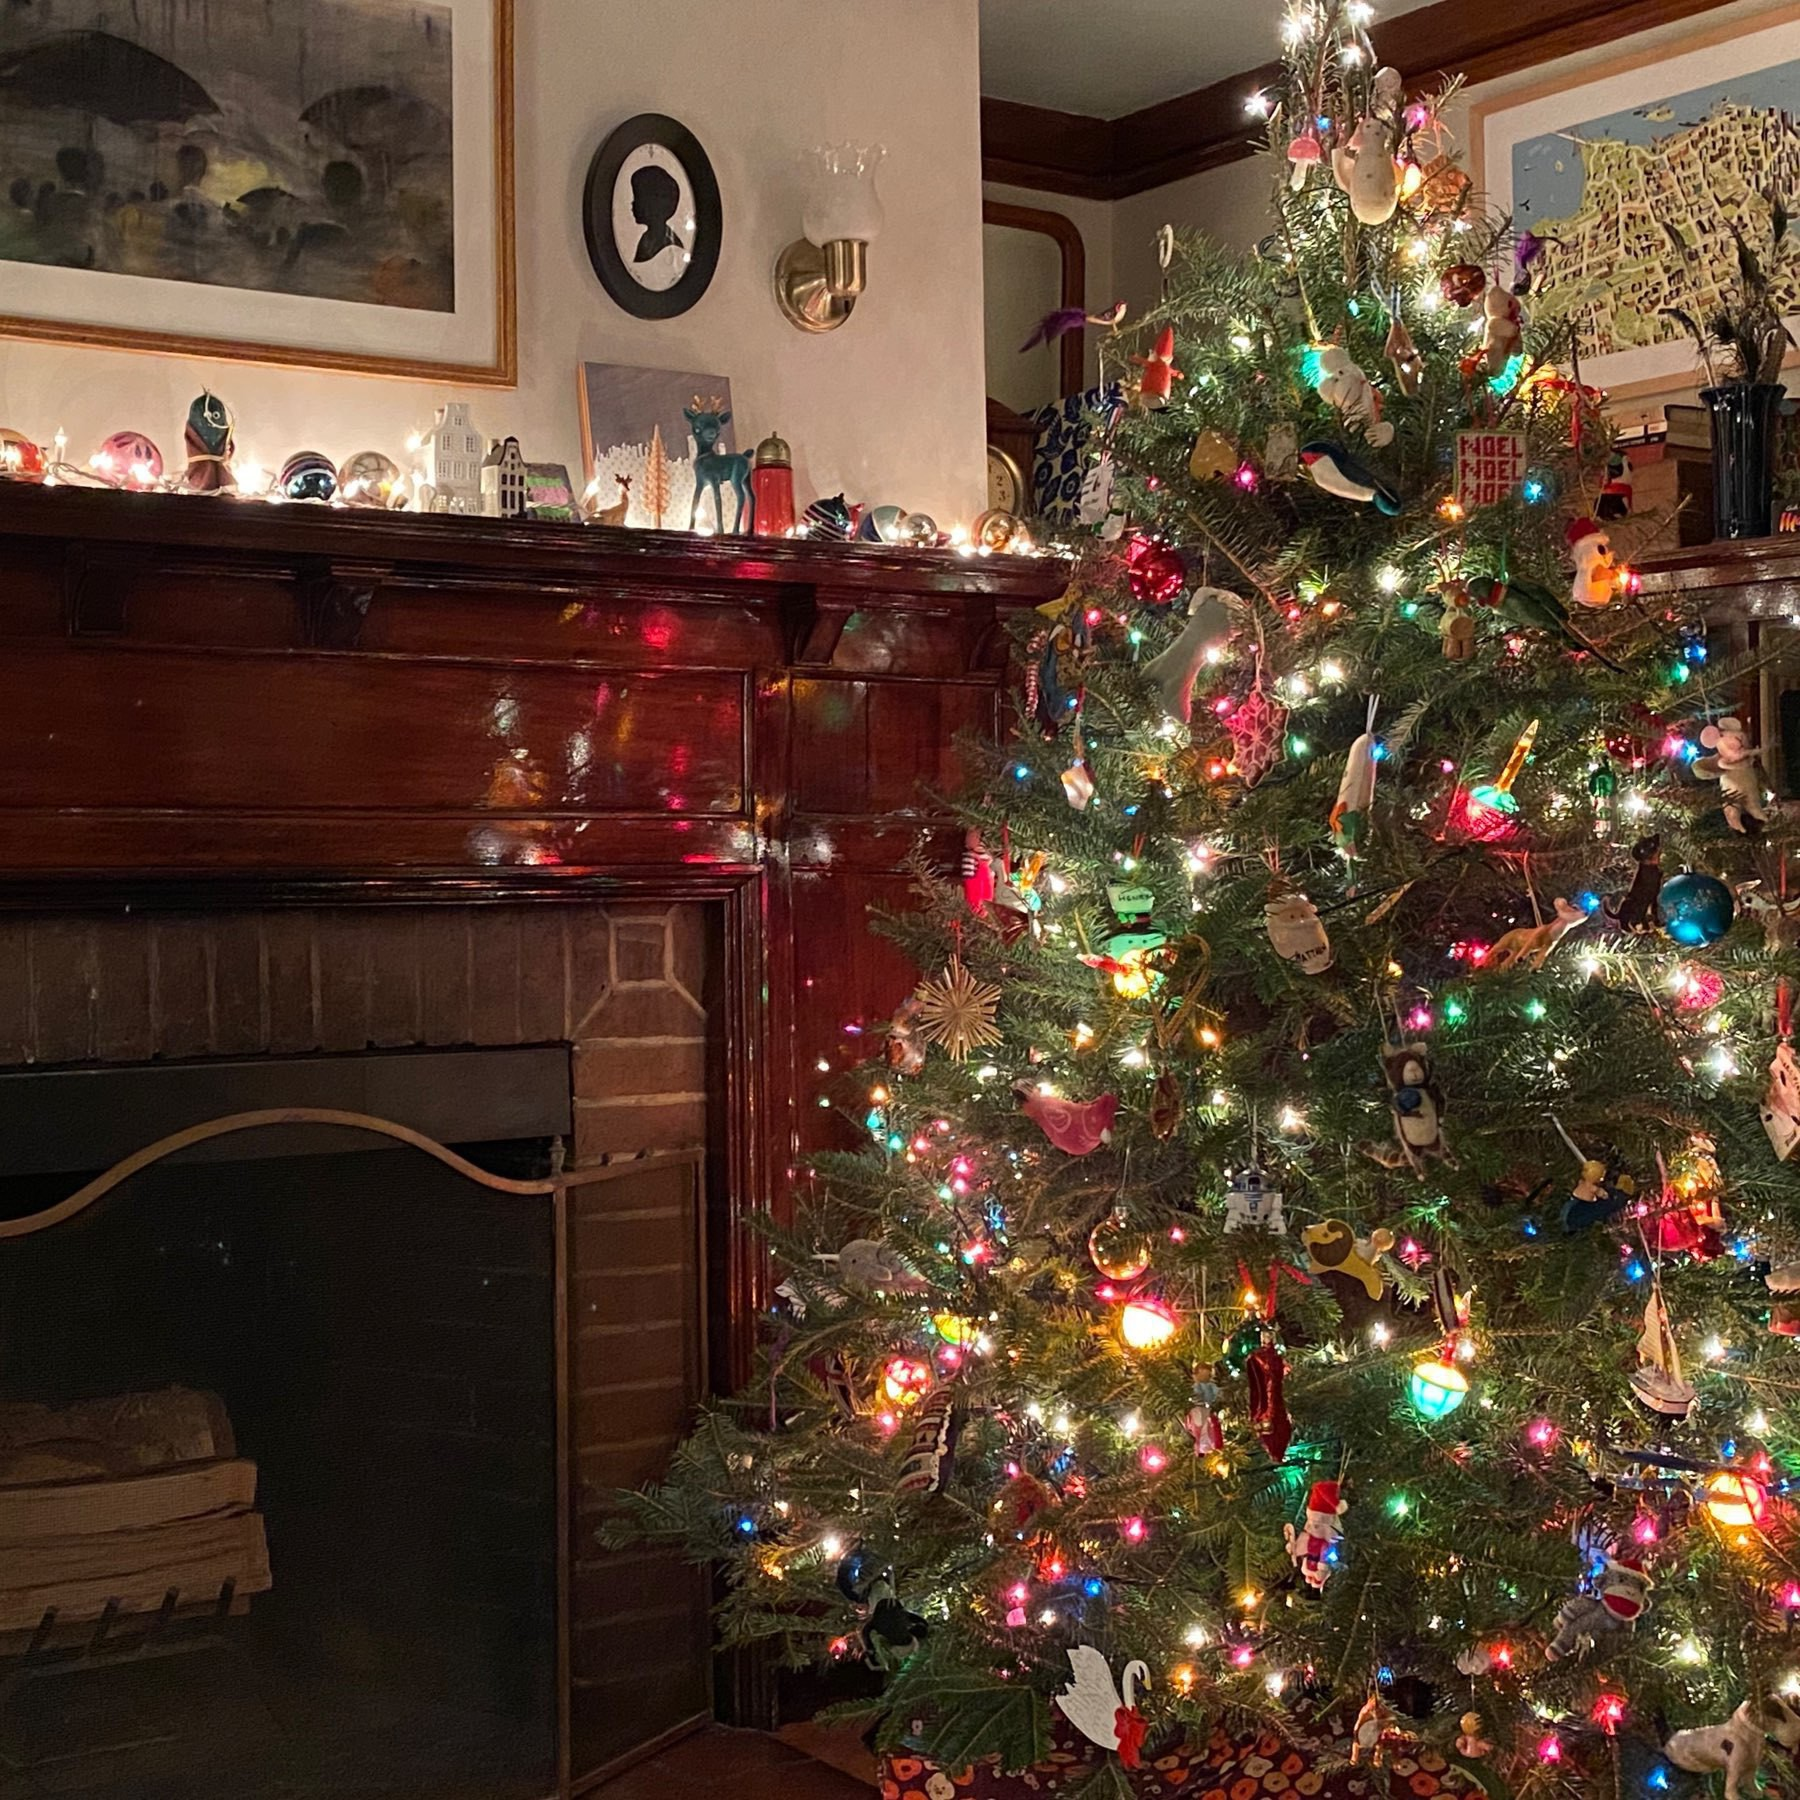 Brightly lit christmas tree against backdrop of fireplace with lights and stockings.